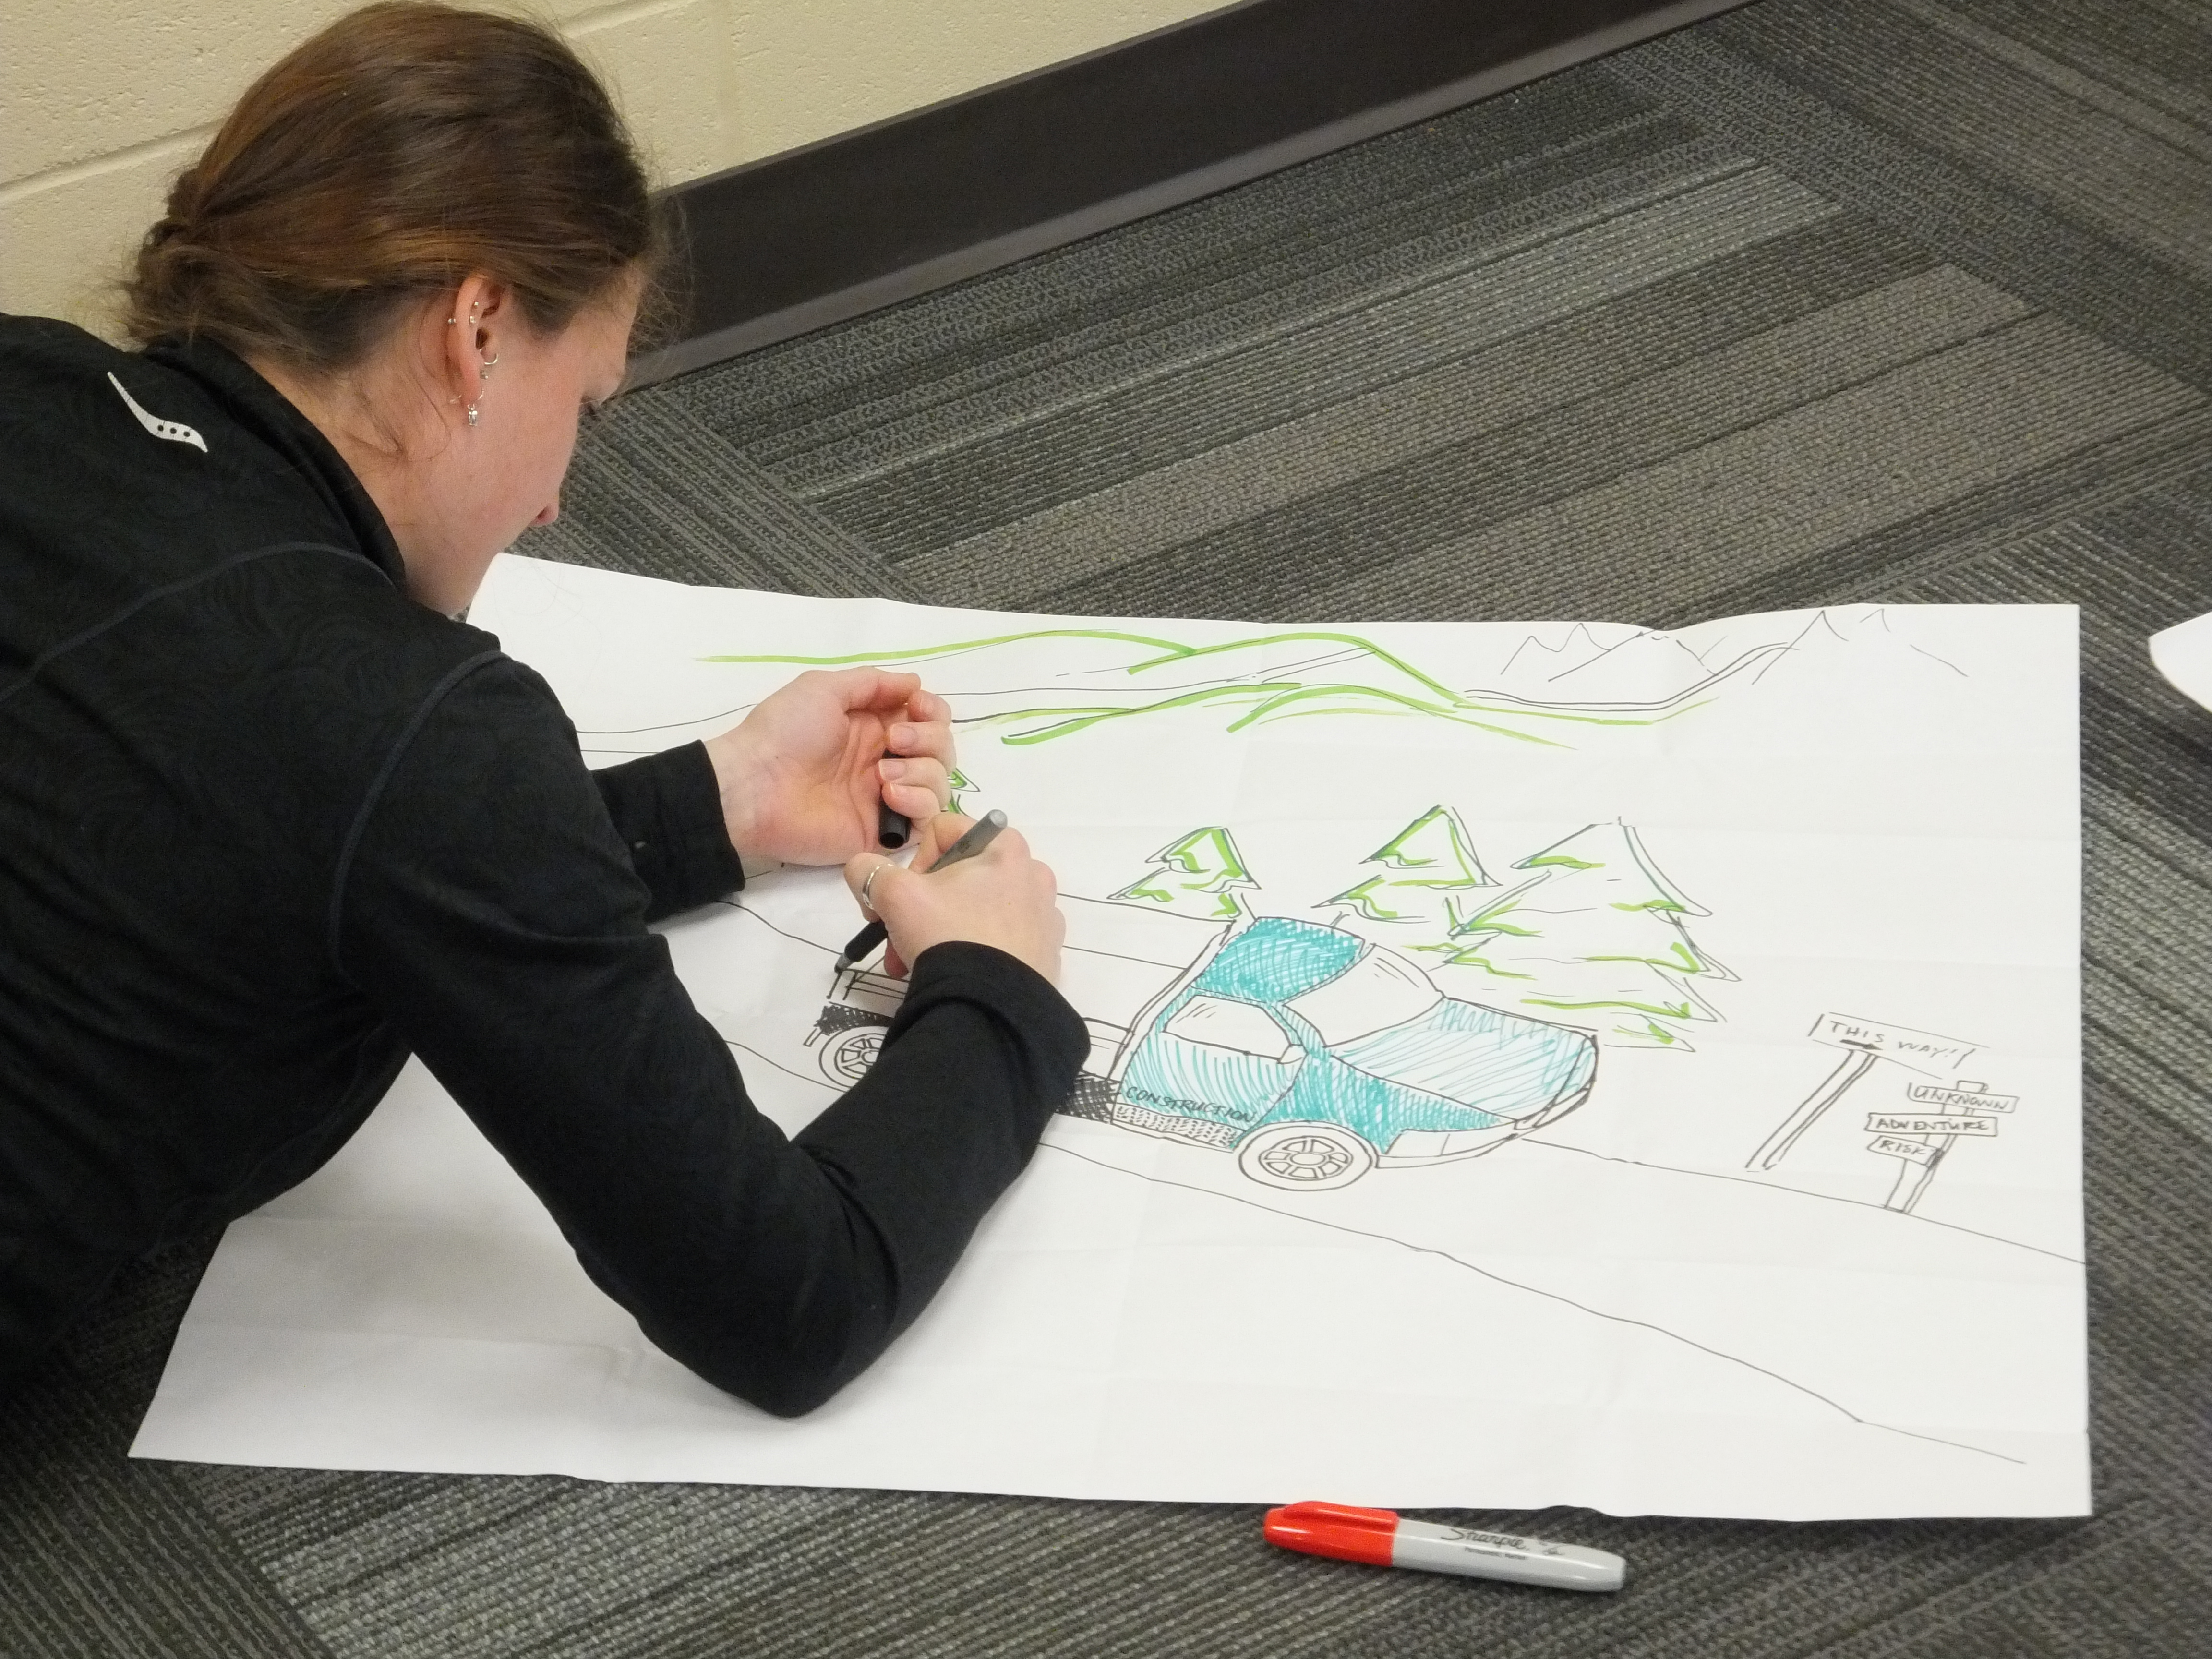 A woman drawing a map.